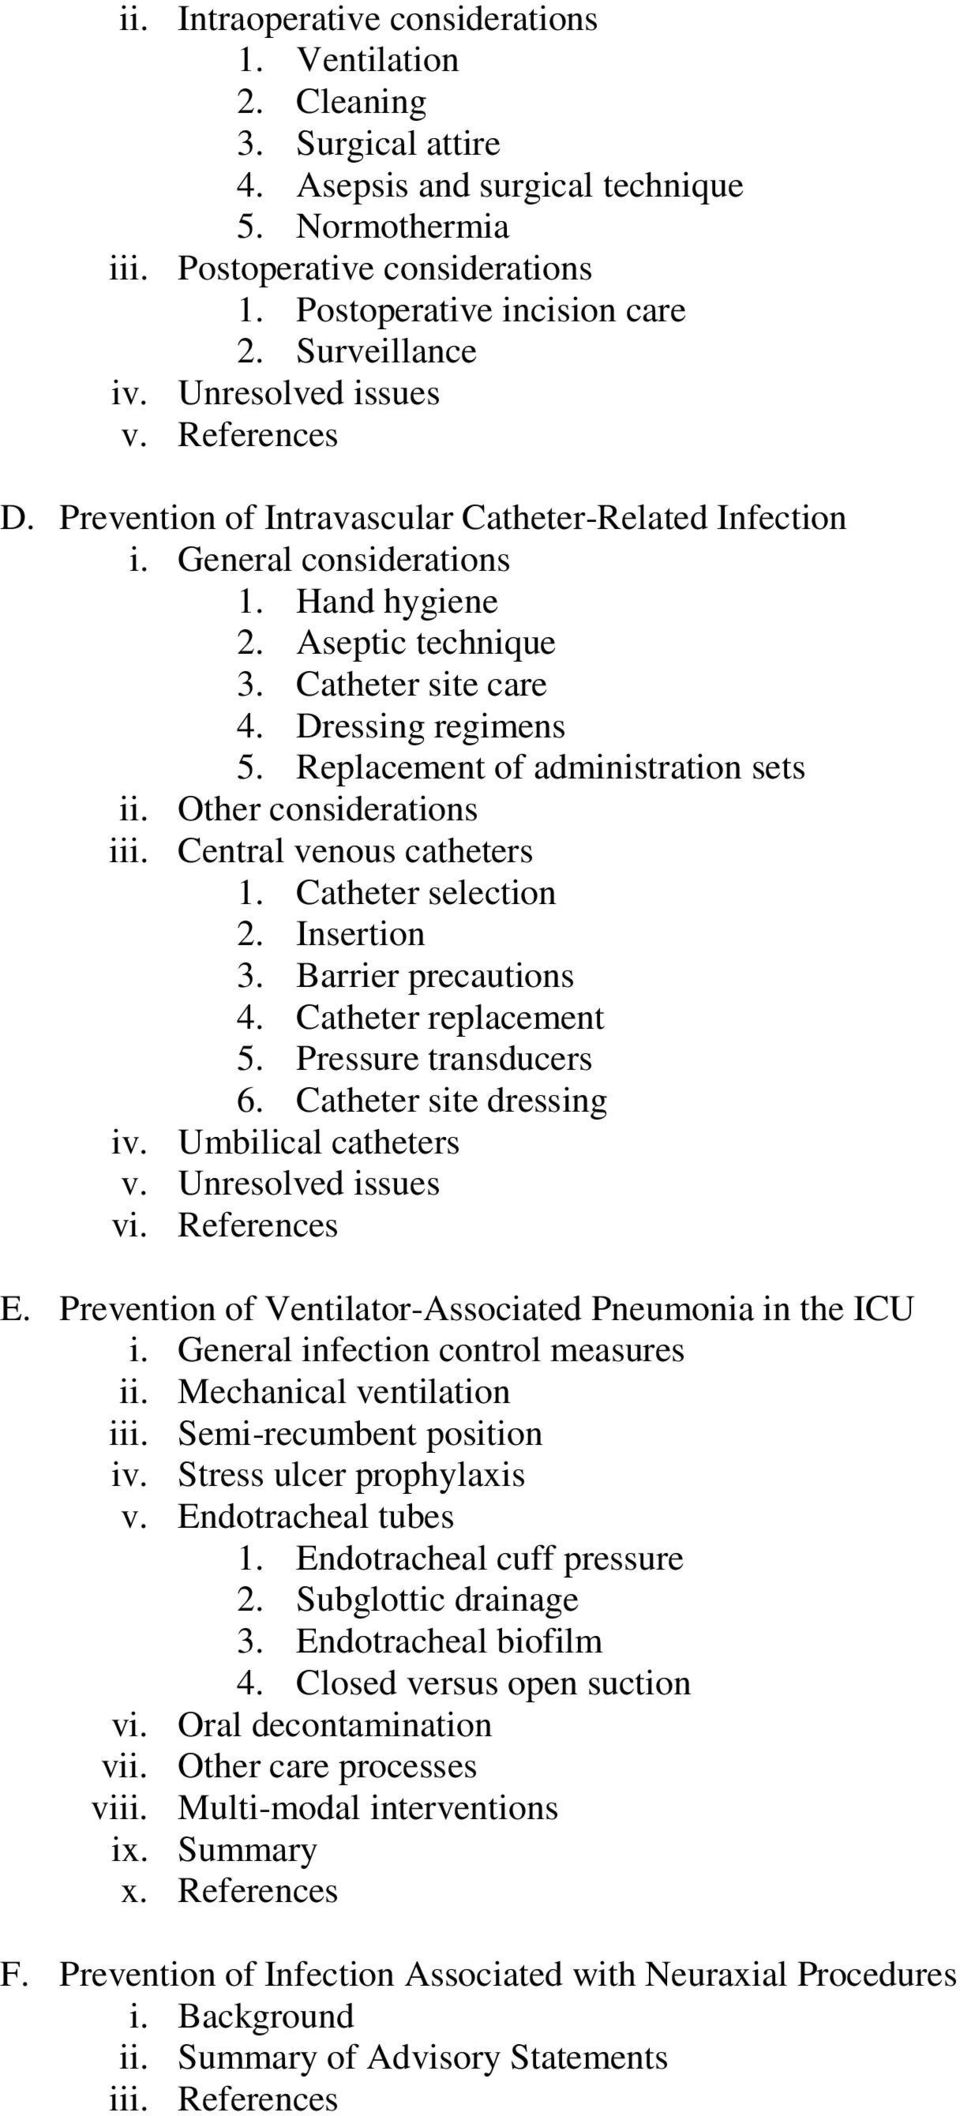 Dressing regimens 5. Replacement of administration sets ii. Other considerations iii. Central venous catheters 1. Catheter selection 2. Insertion 3. Barrier precautions 4. Catheter replacement 5.